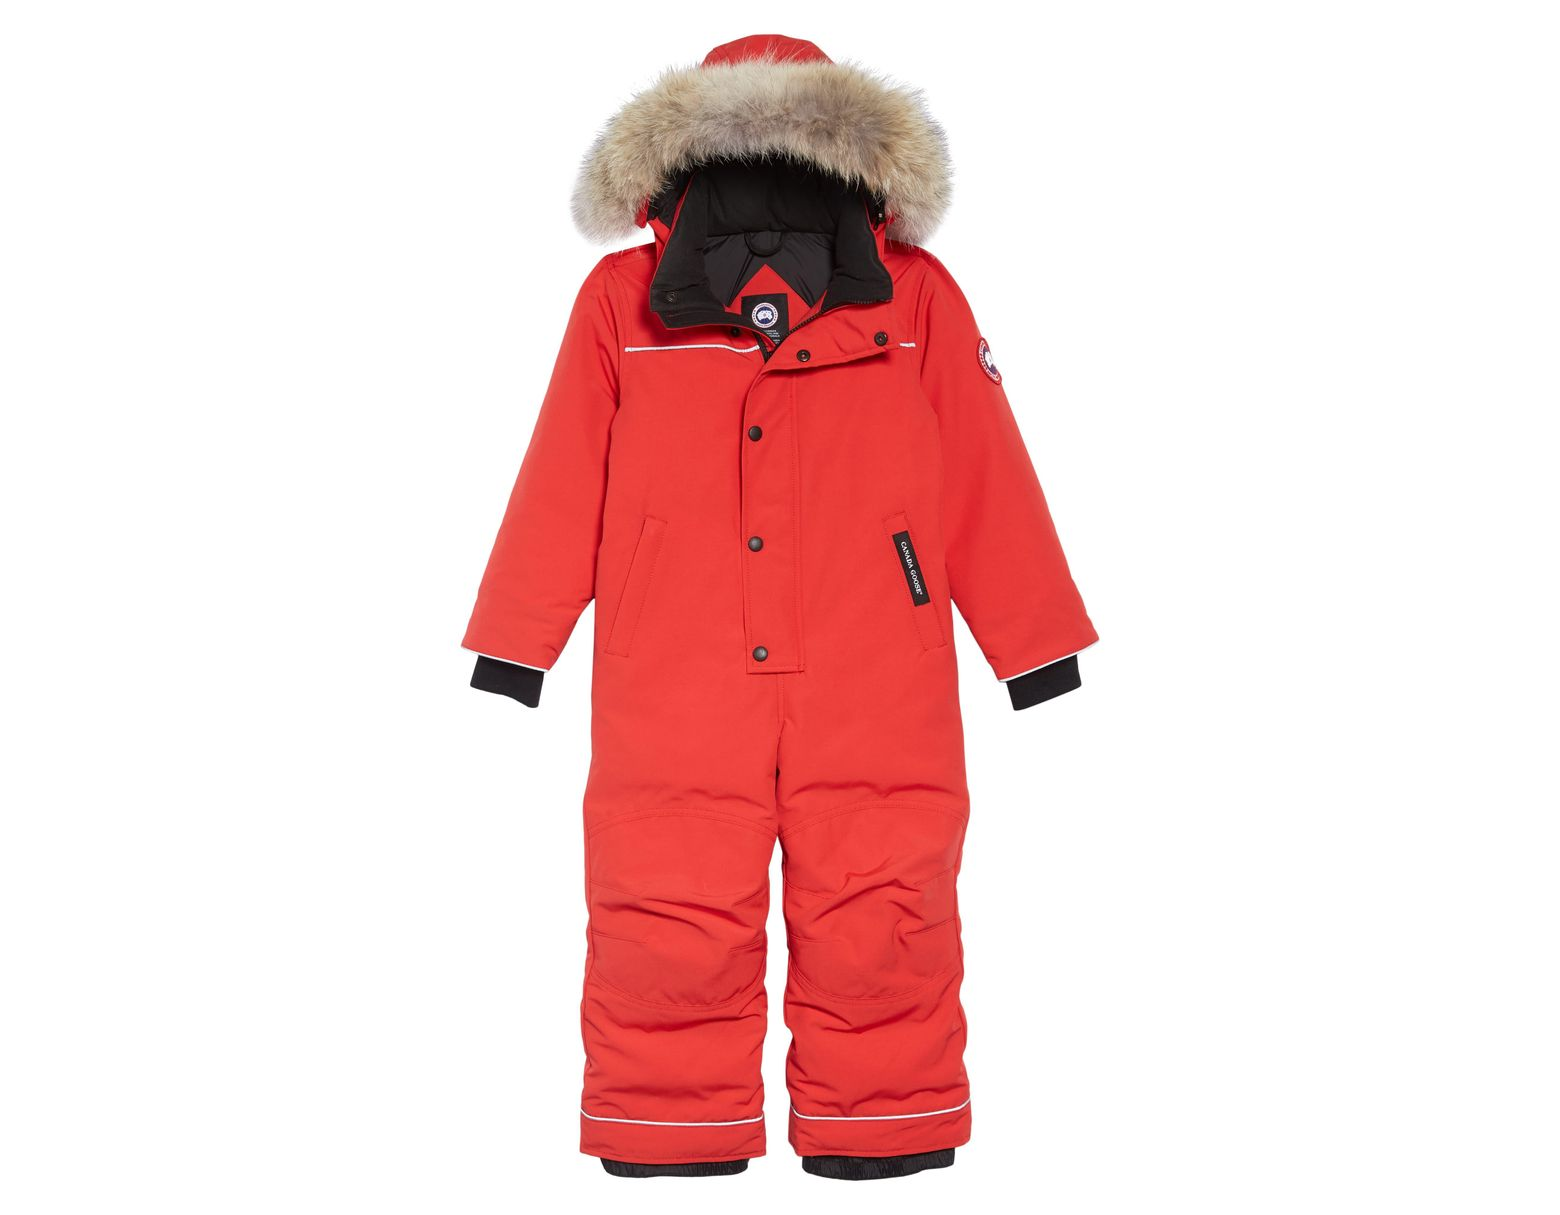 eb070b41e Canada Goose Baby Grizzly Snowsuit With Genuine Coyote Fur Trim in Red -  Save 6% - Lyst